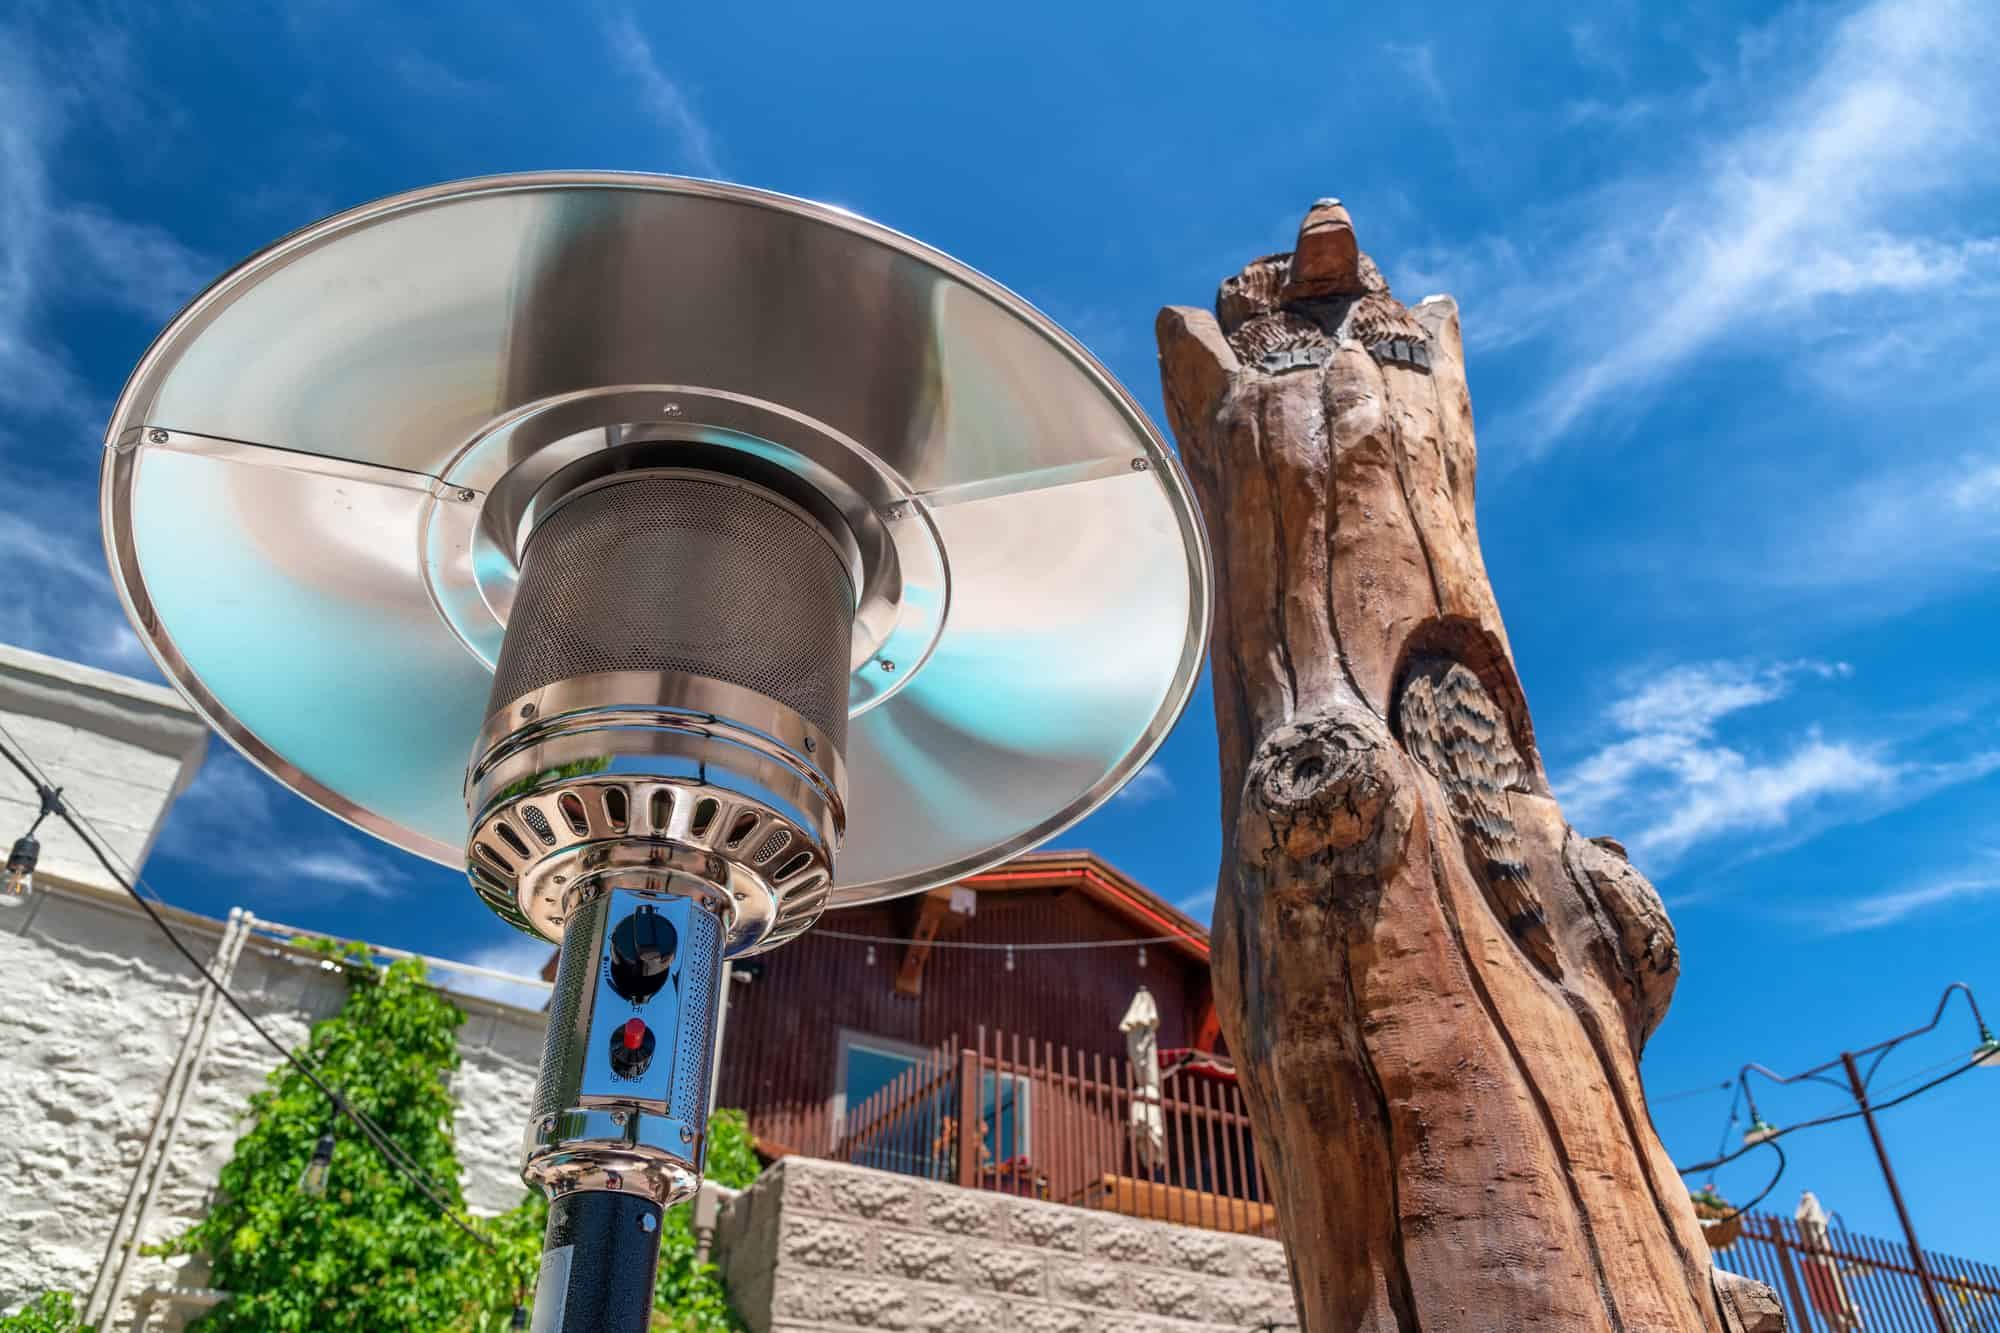 How To Properly Store An Outdoor Patio Heater Captain Patio